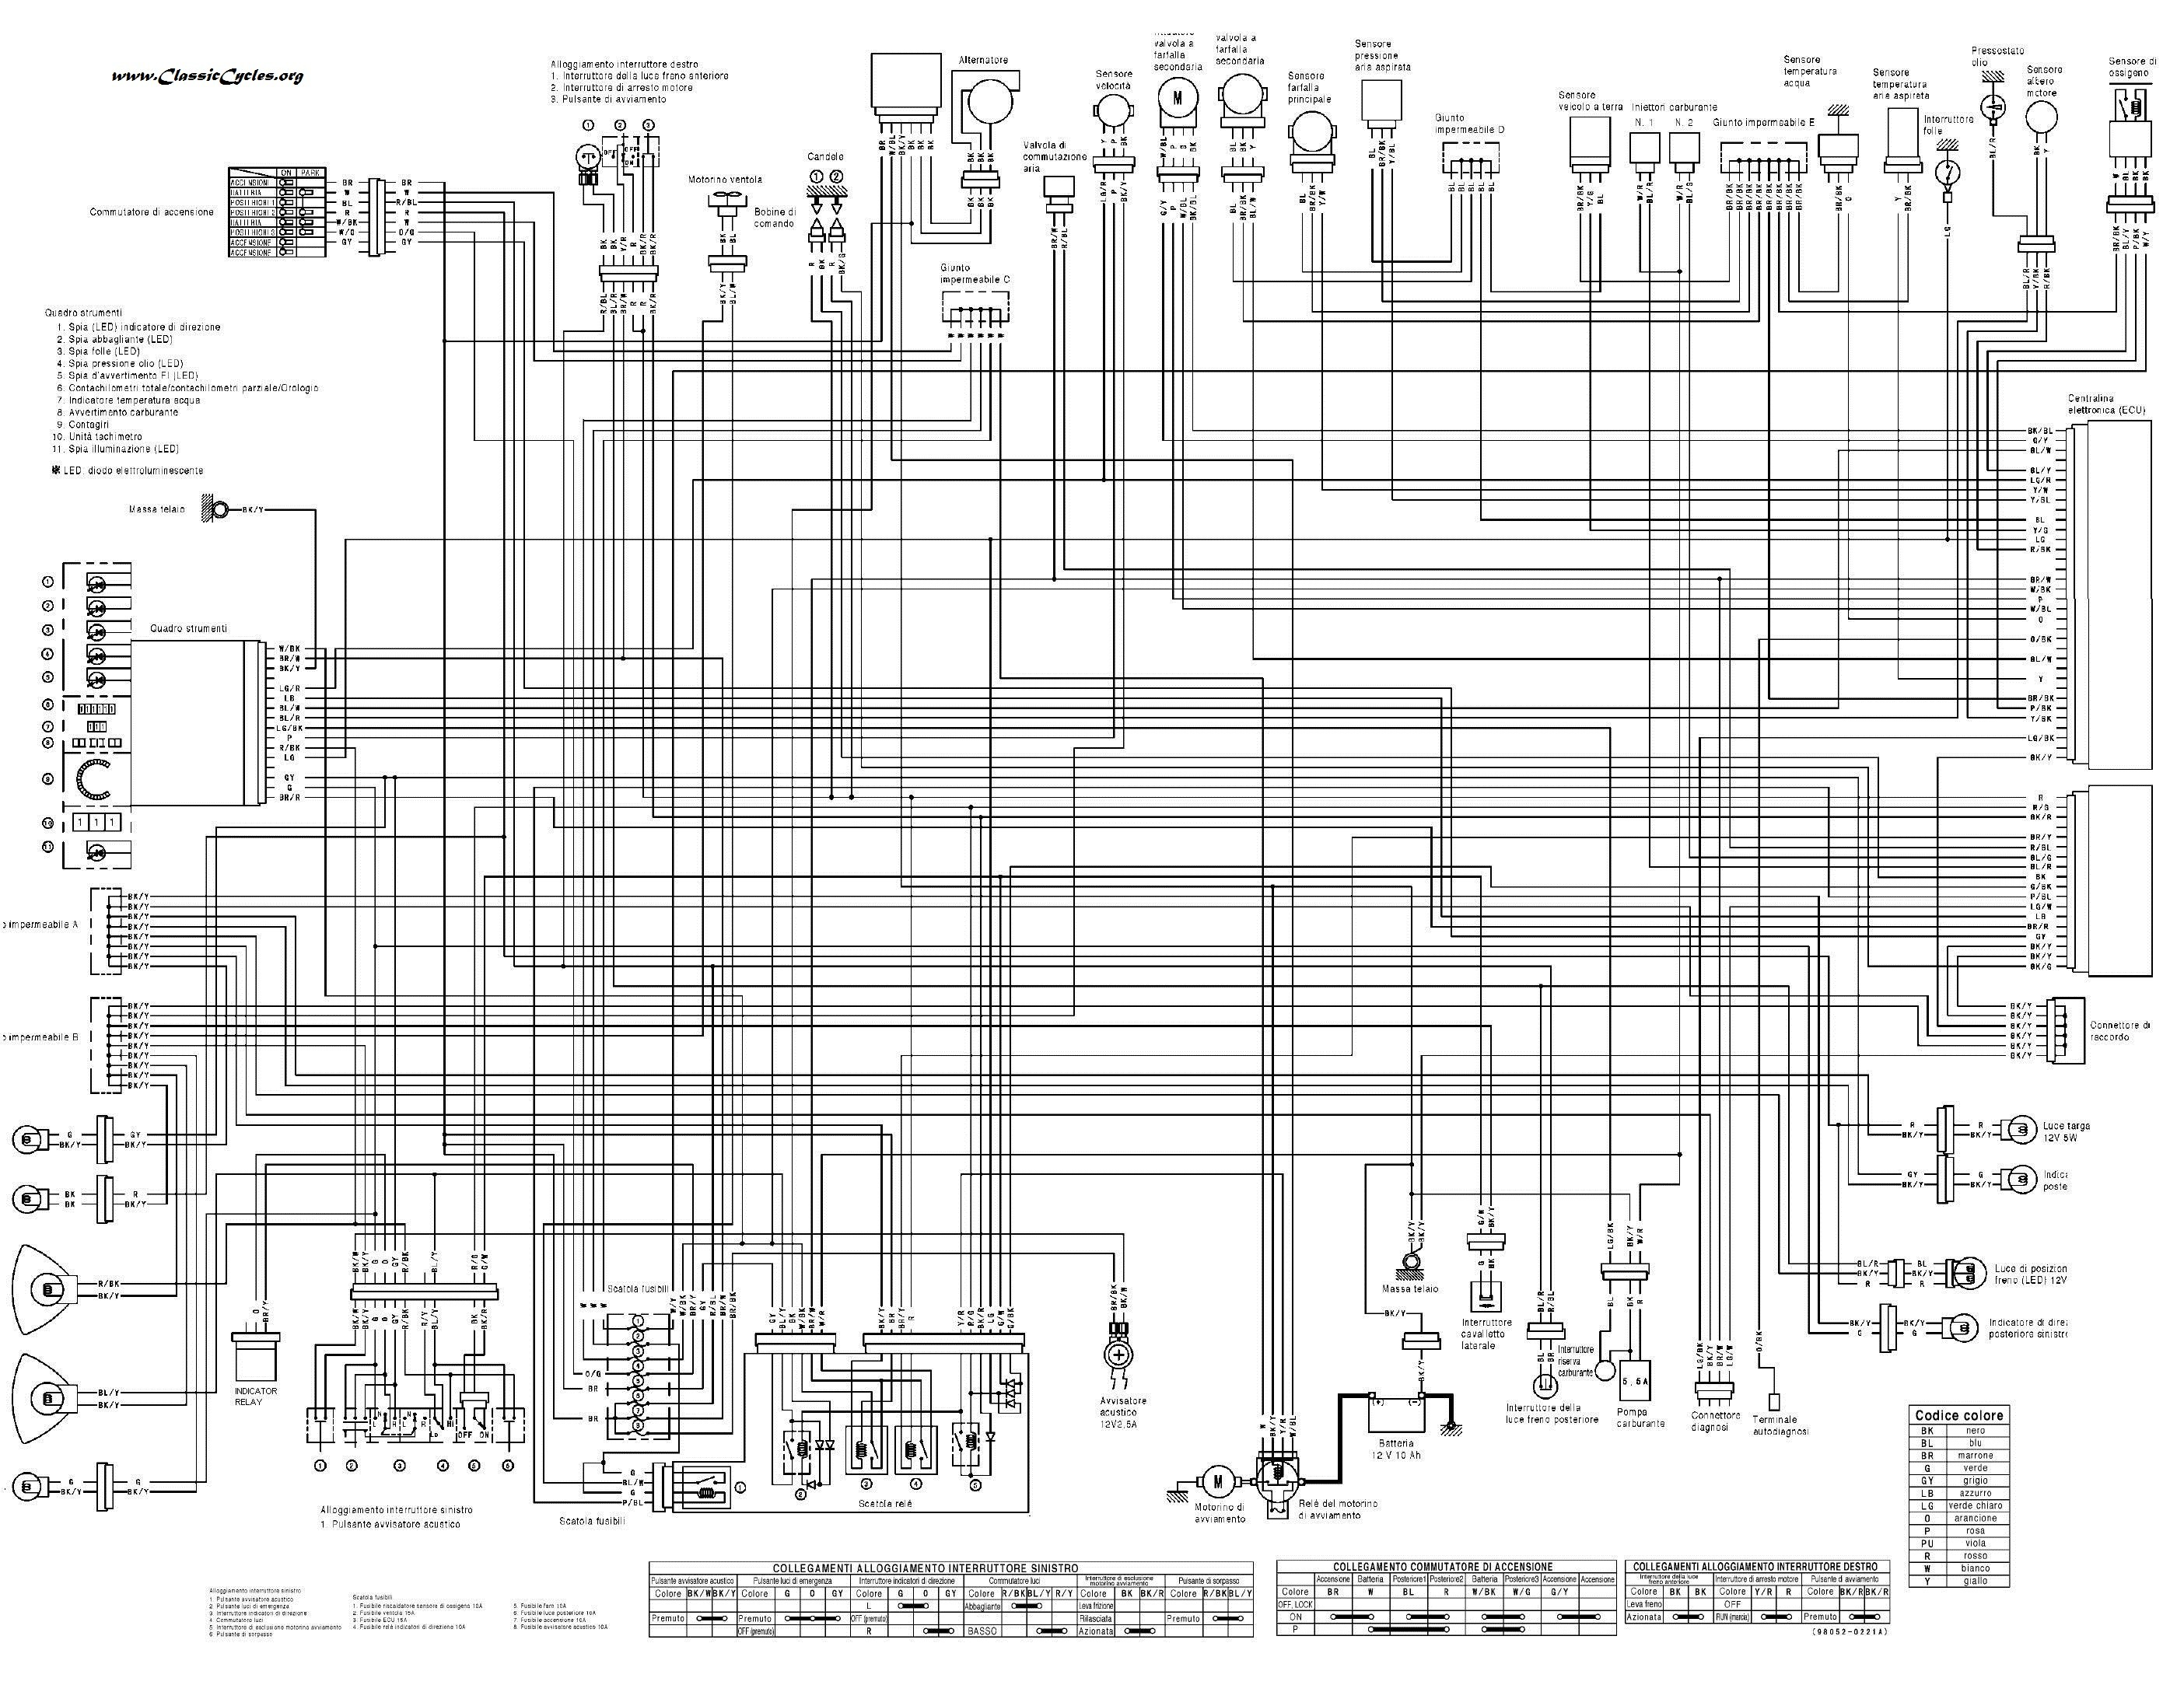 1998 dodge durango engine diagram 2003 dodge durango emissions diagram free download wiring diagram of 1998 dodge durango engine diagram 1 2002 dodge durango wiring diagram free picture best wiring library